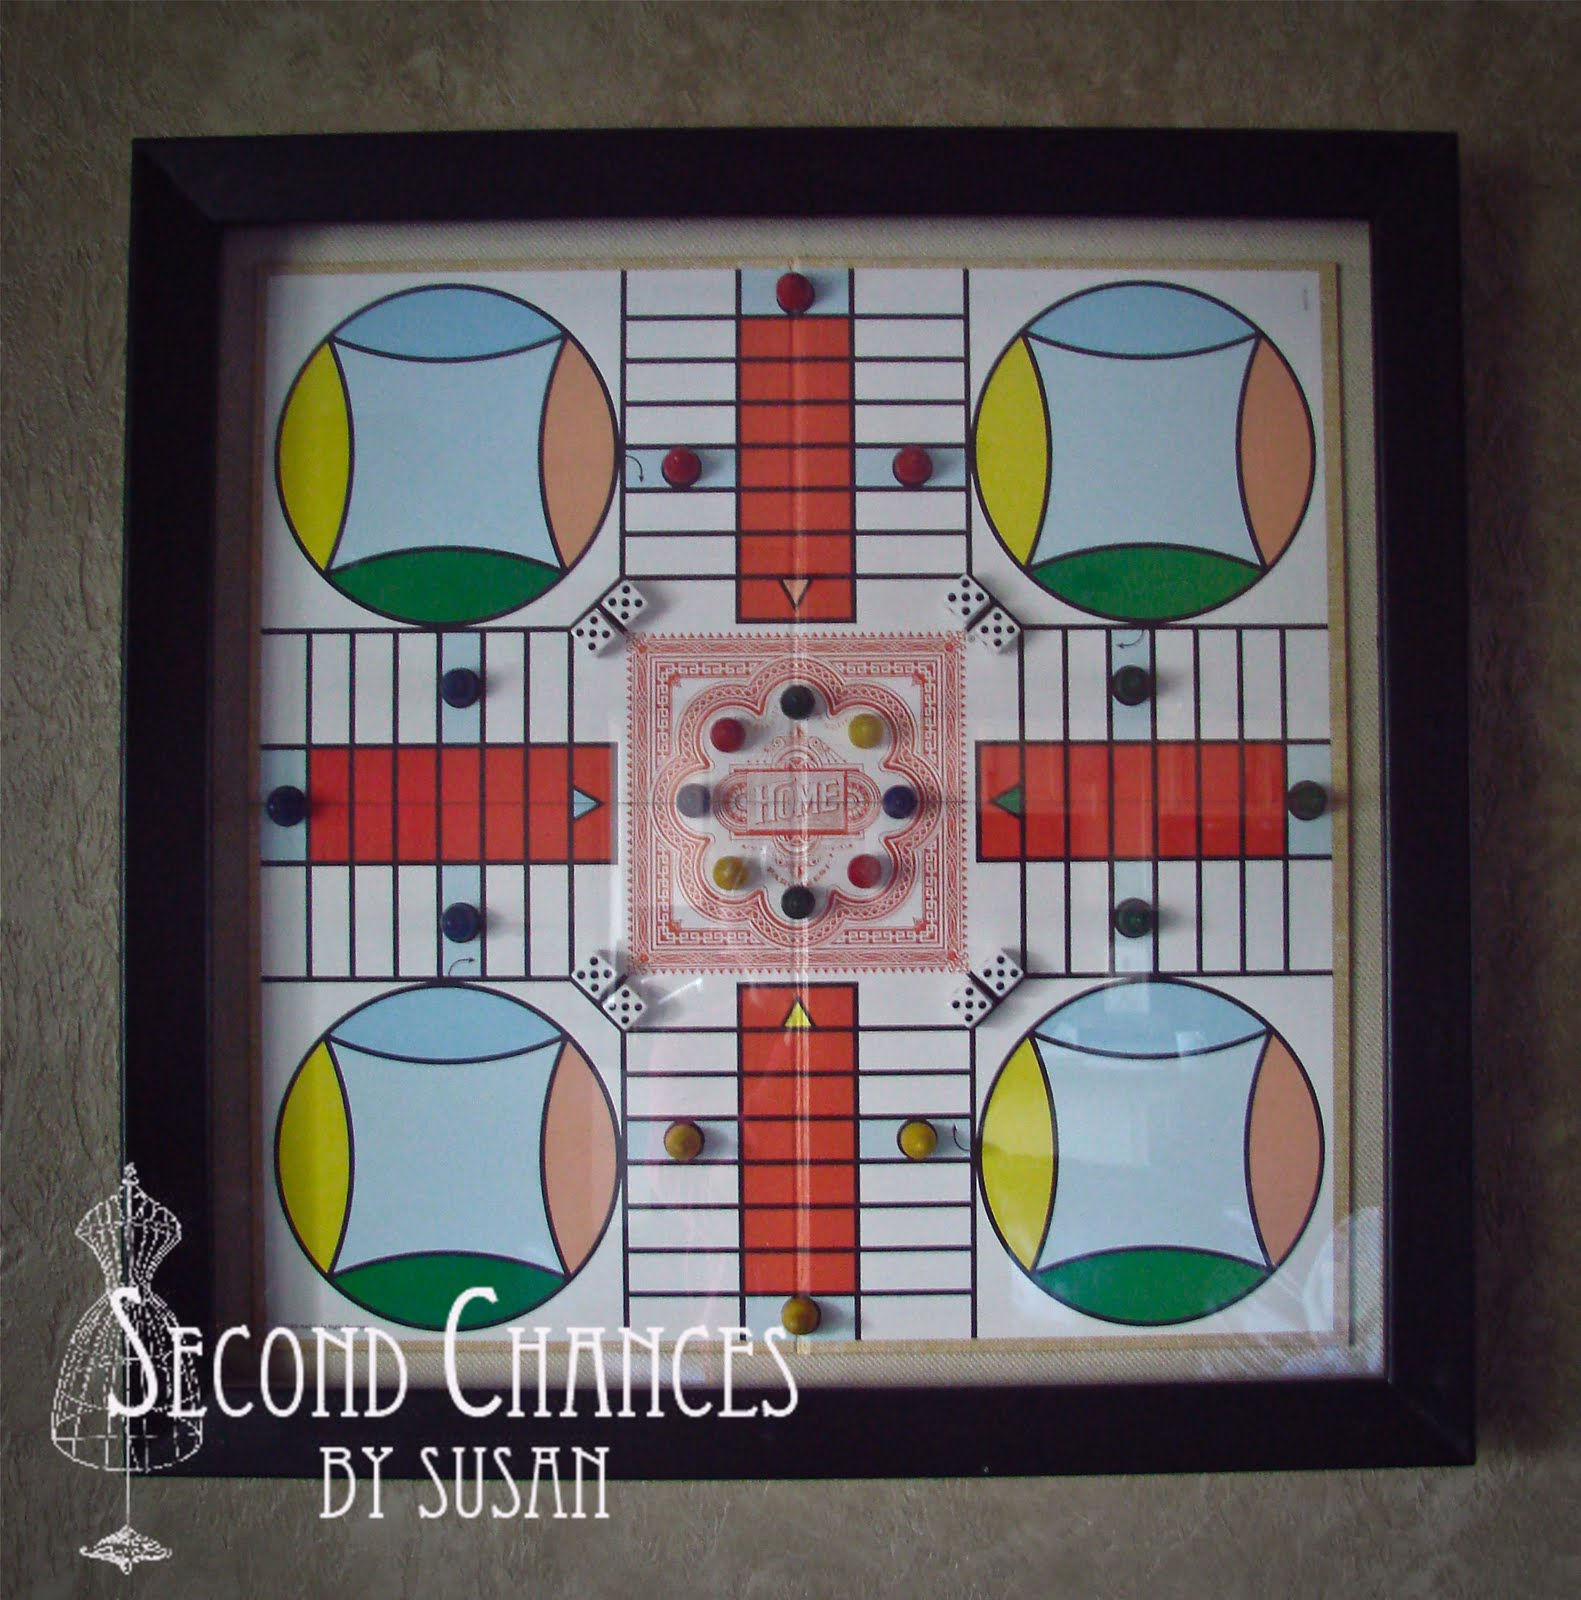 Second Chances by Susan: Vintage Board Game Shadow Boxes